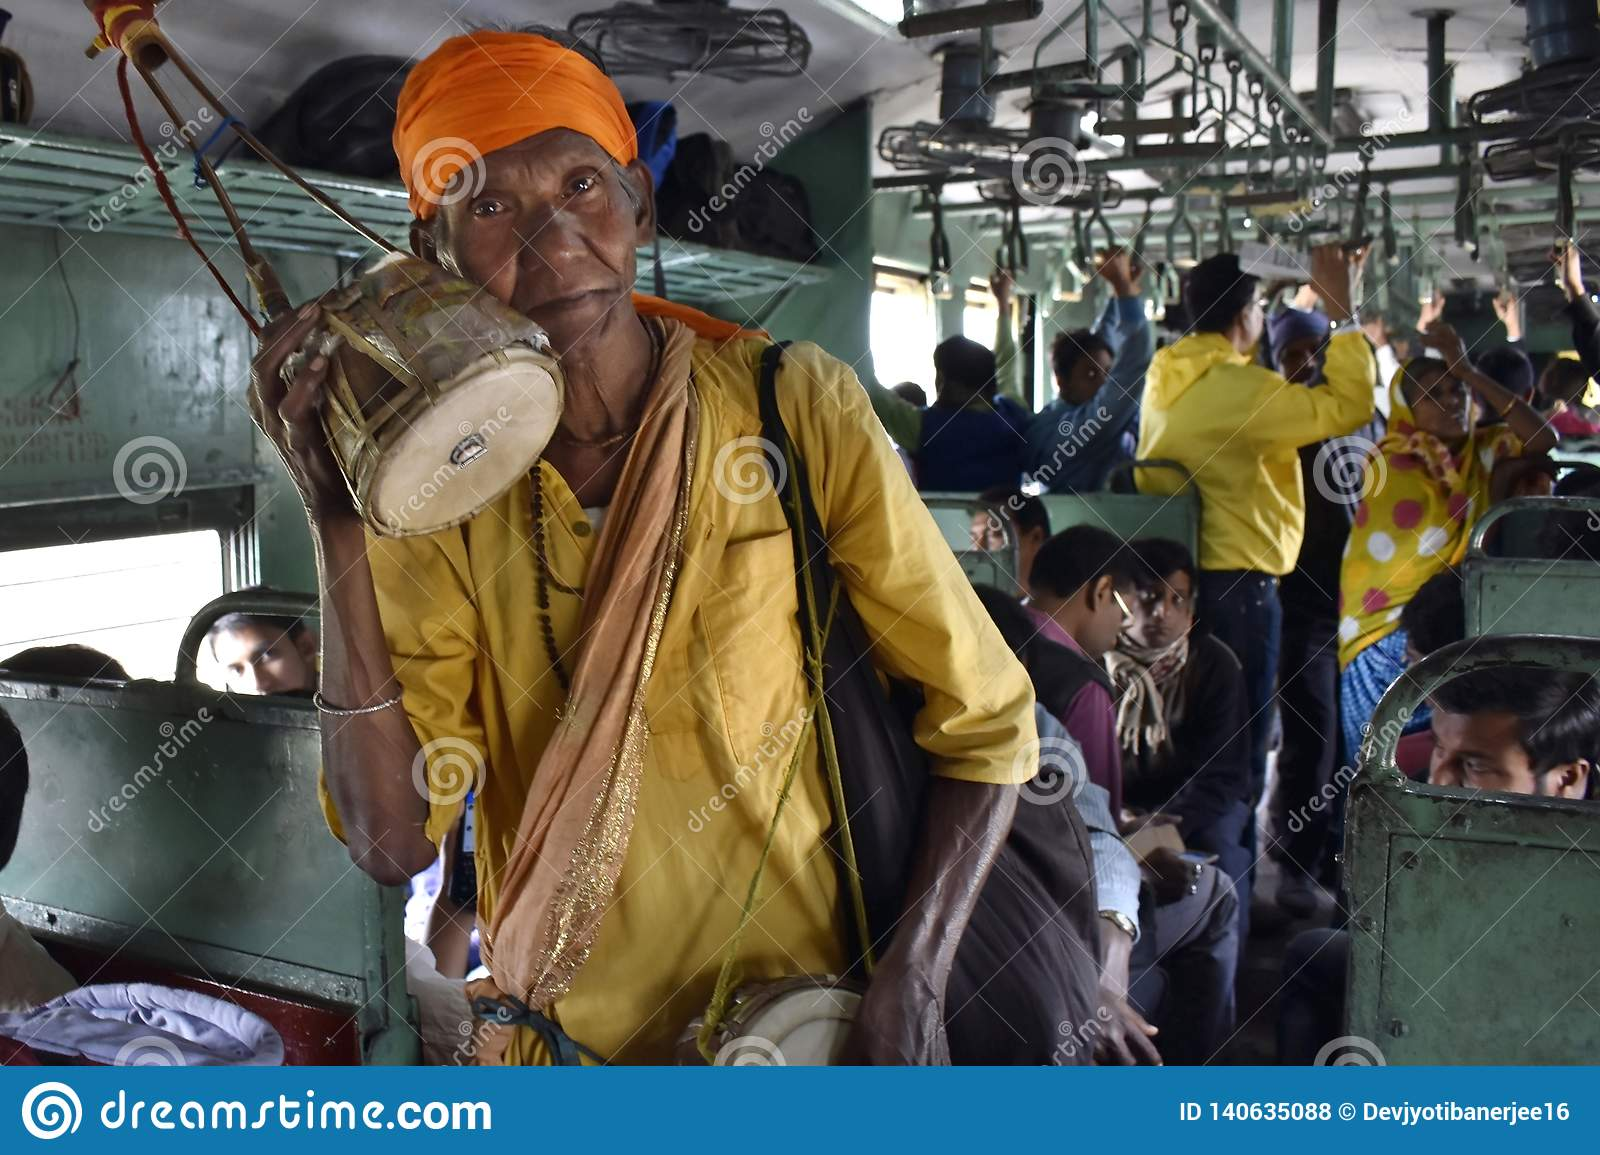 A poor beggar singing and begging on a local train